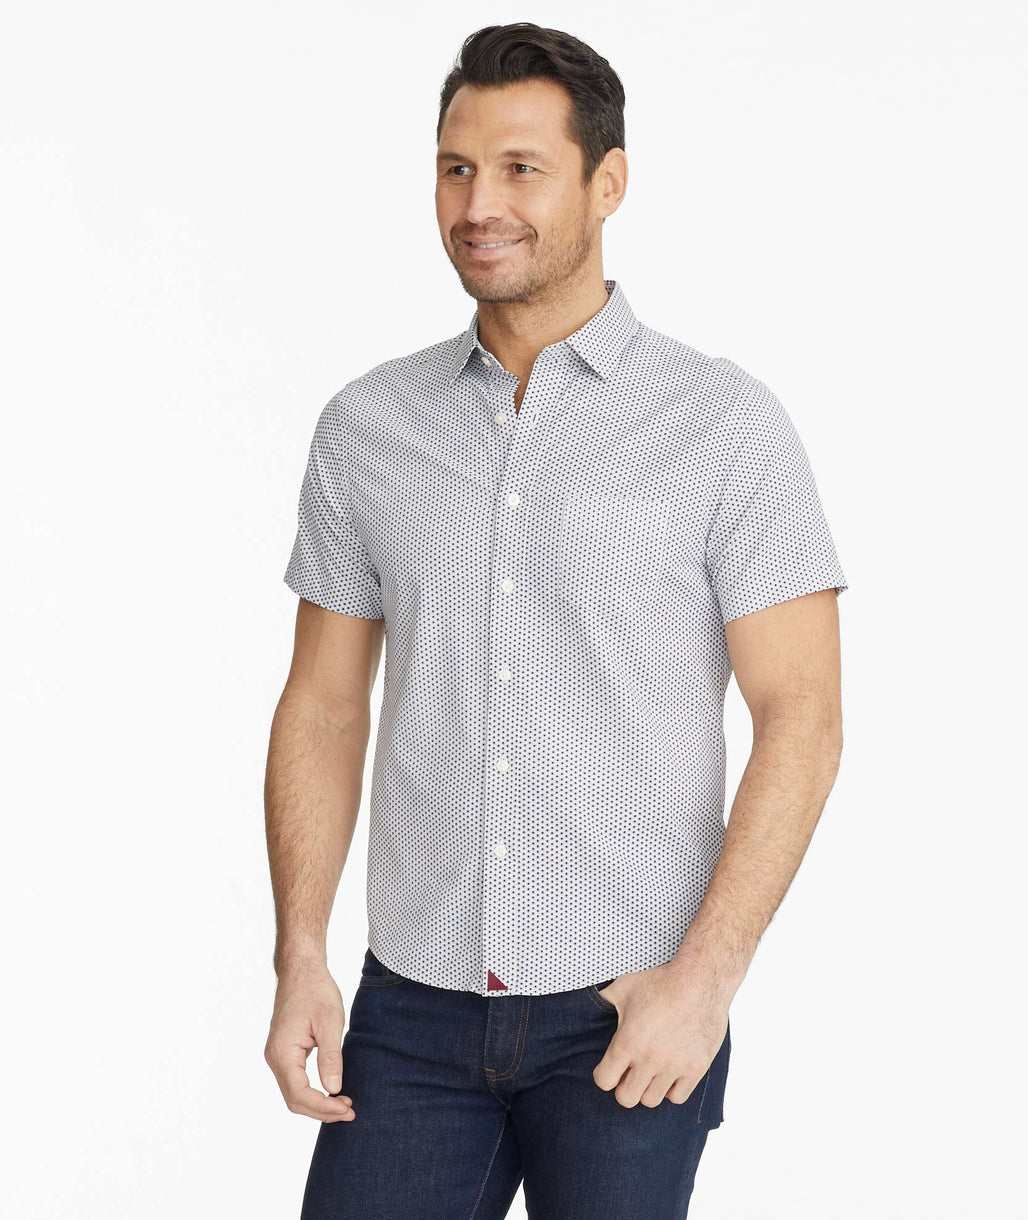 Model wearing a White Wrinkle-Free Performance Short-Sleeve Barcolo Shirt